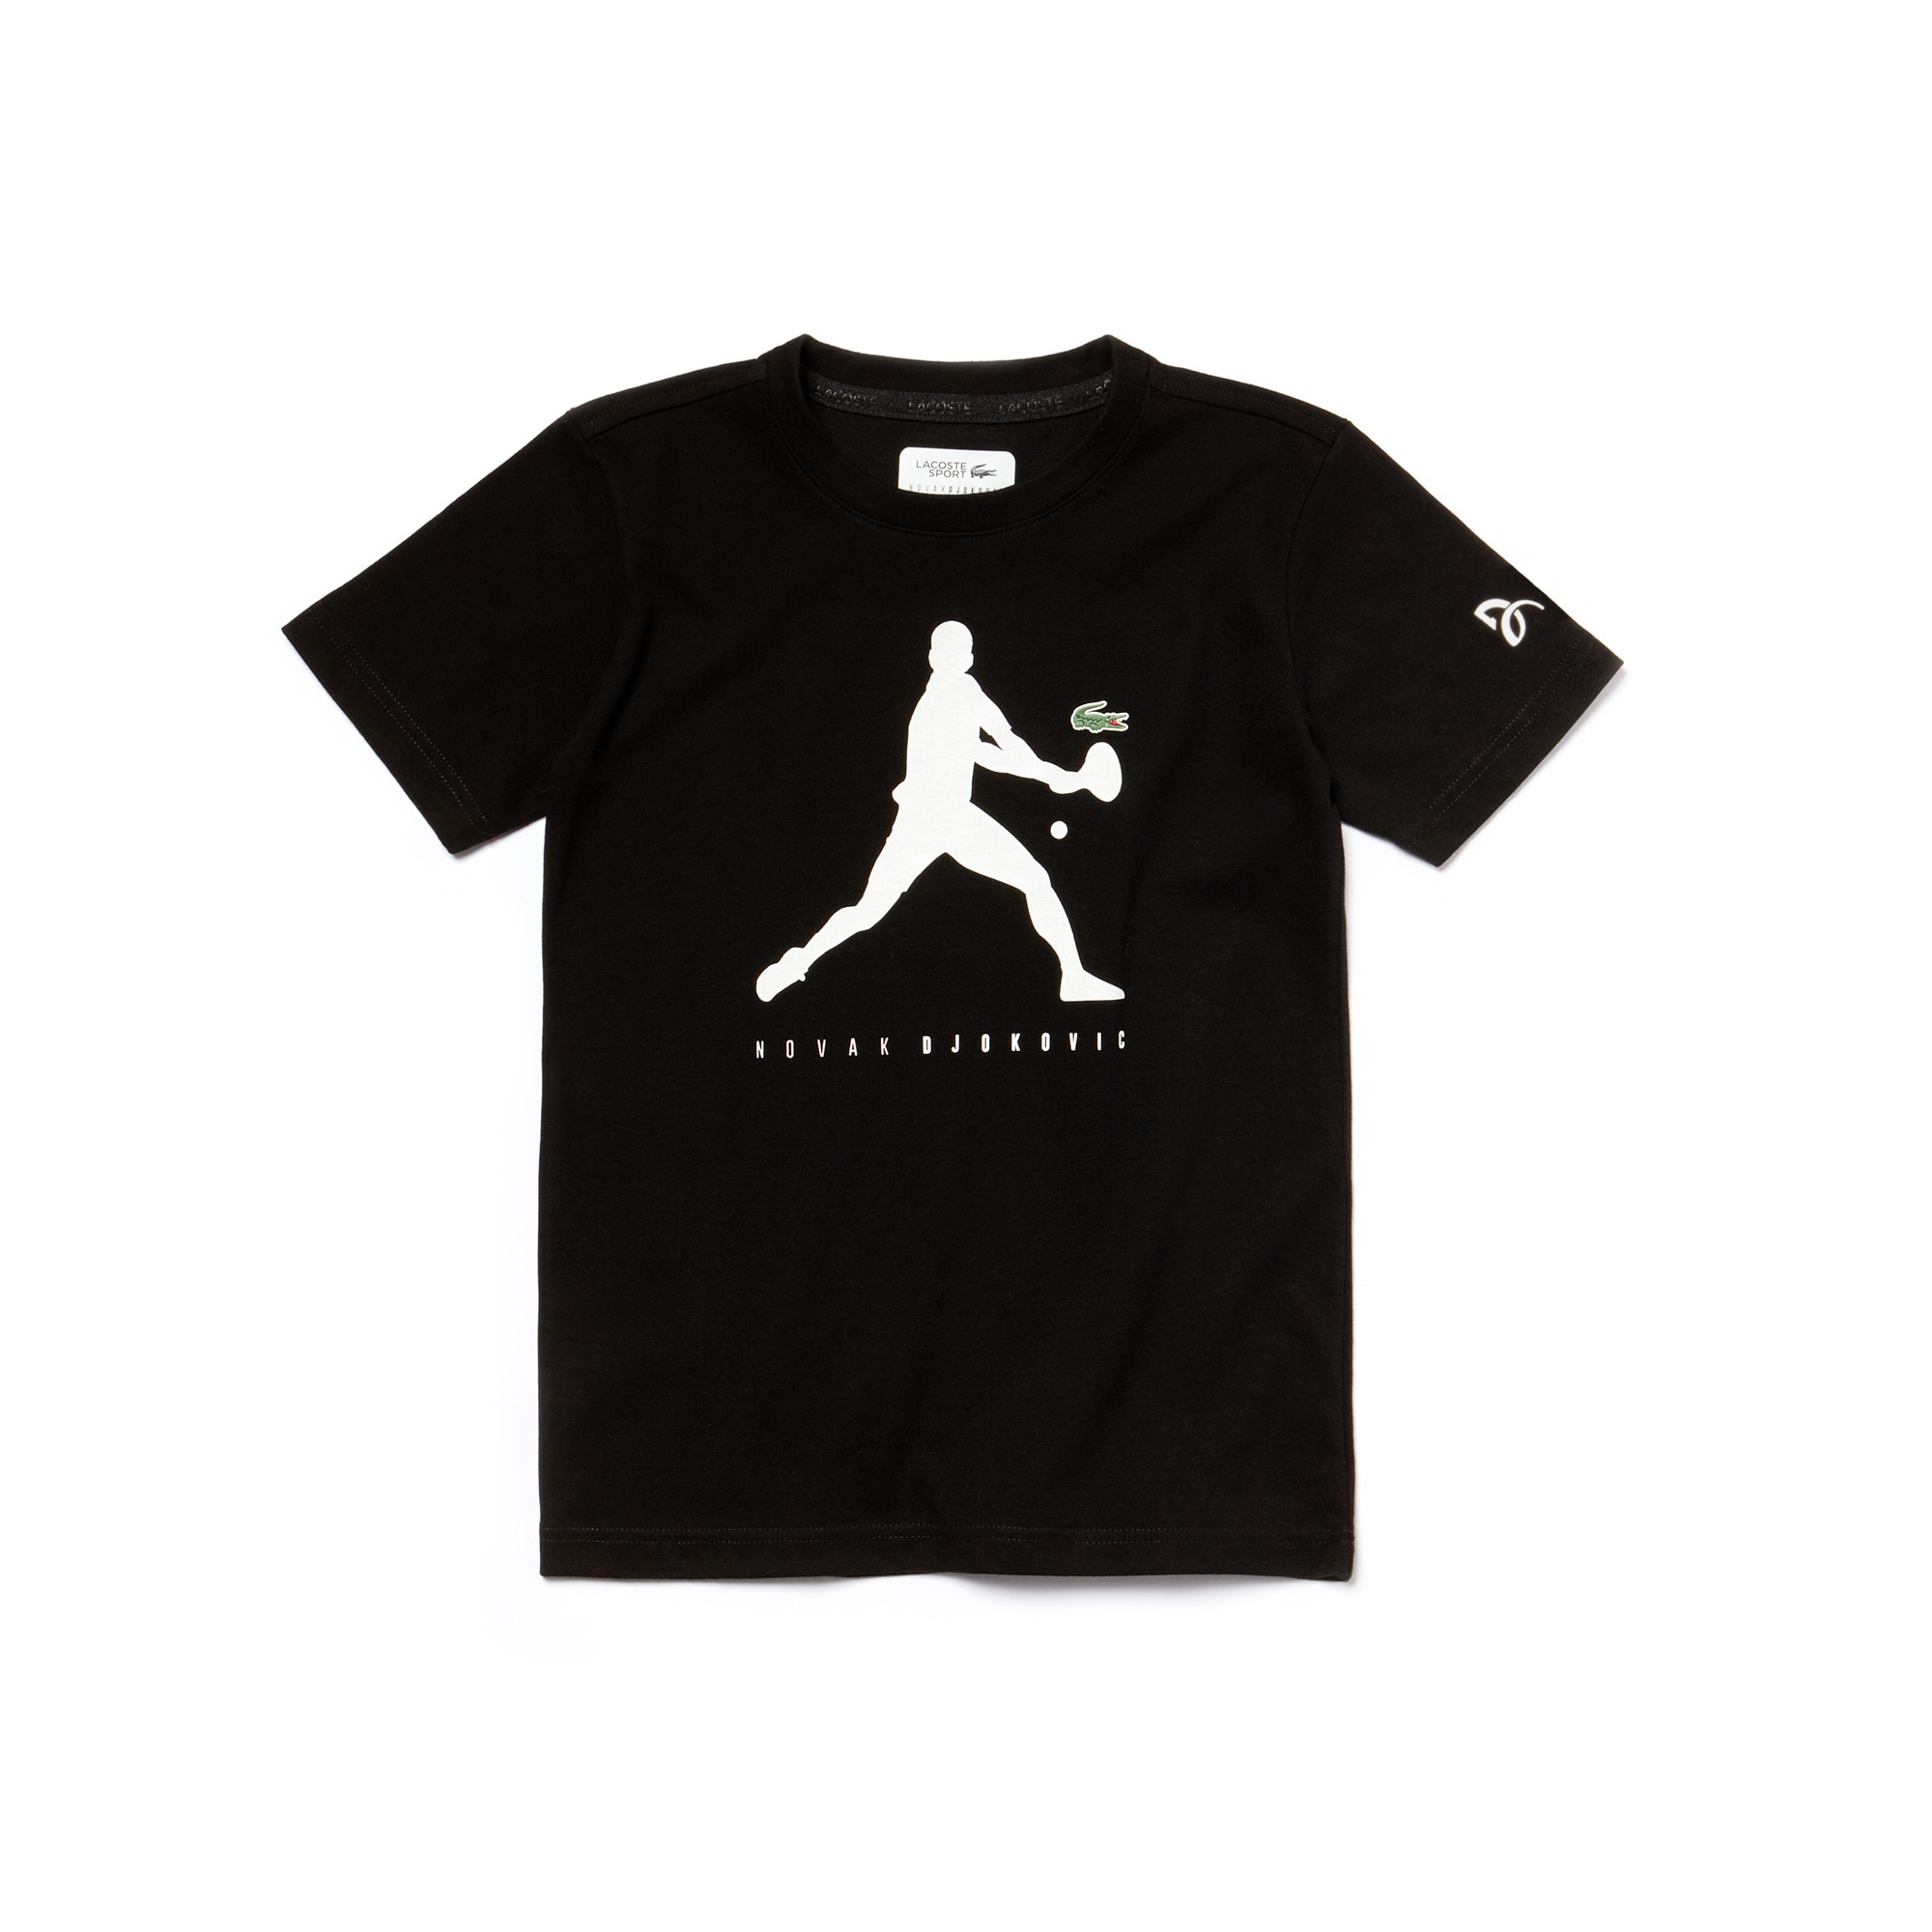 Boys' Lacoste SPORT NOVAK DJOKOVIC SUPPORT WITH STYLE COLLECTION Technical Jersey T-shirt